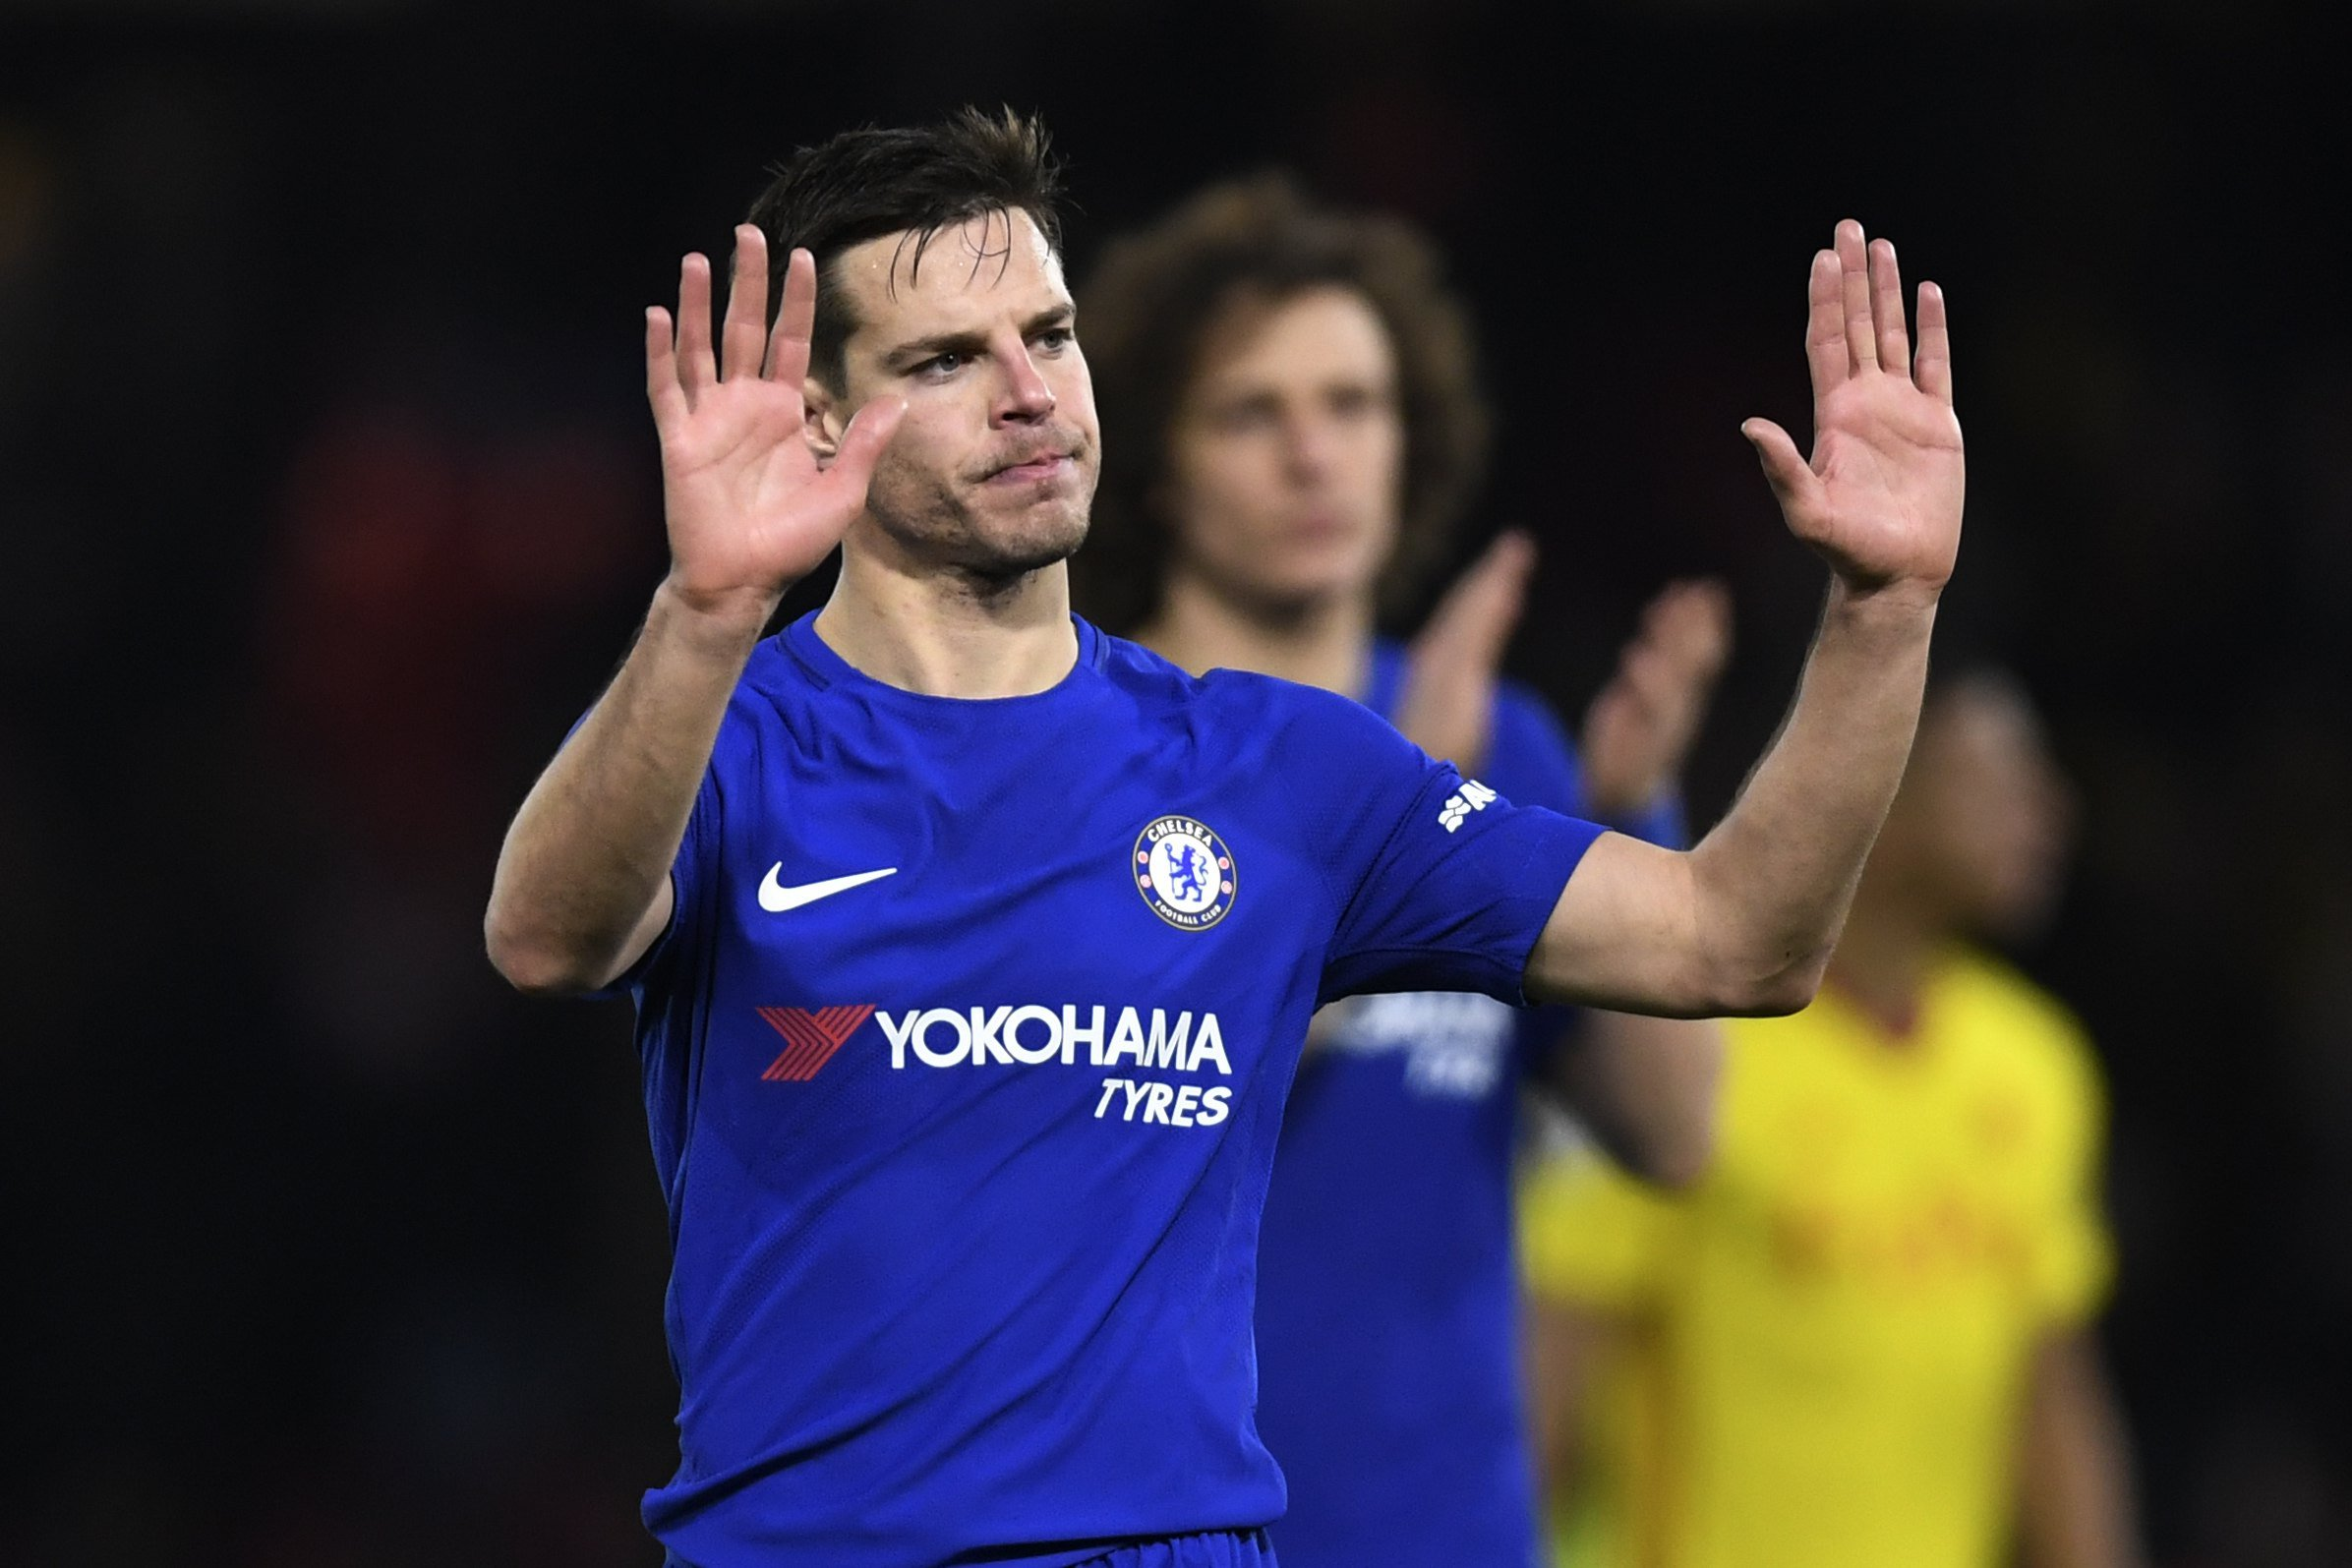 Cesar Azpilicueta claims Andres Iniesta will get a hostile reception from Chelsea fans